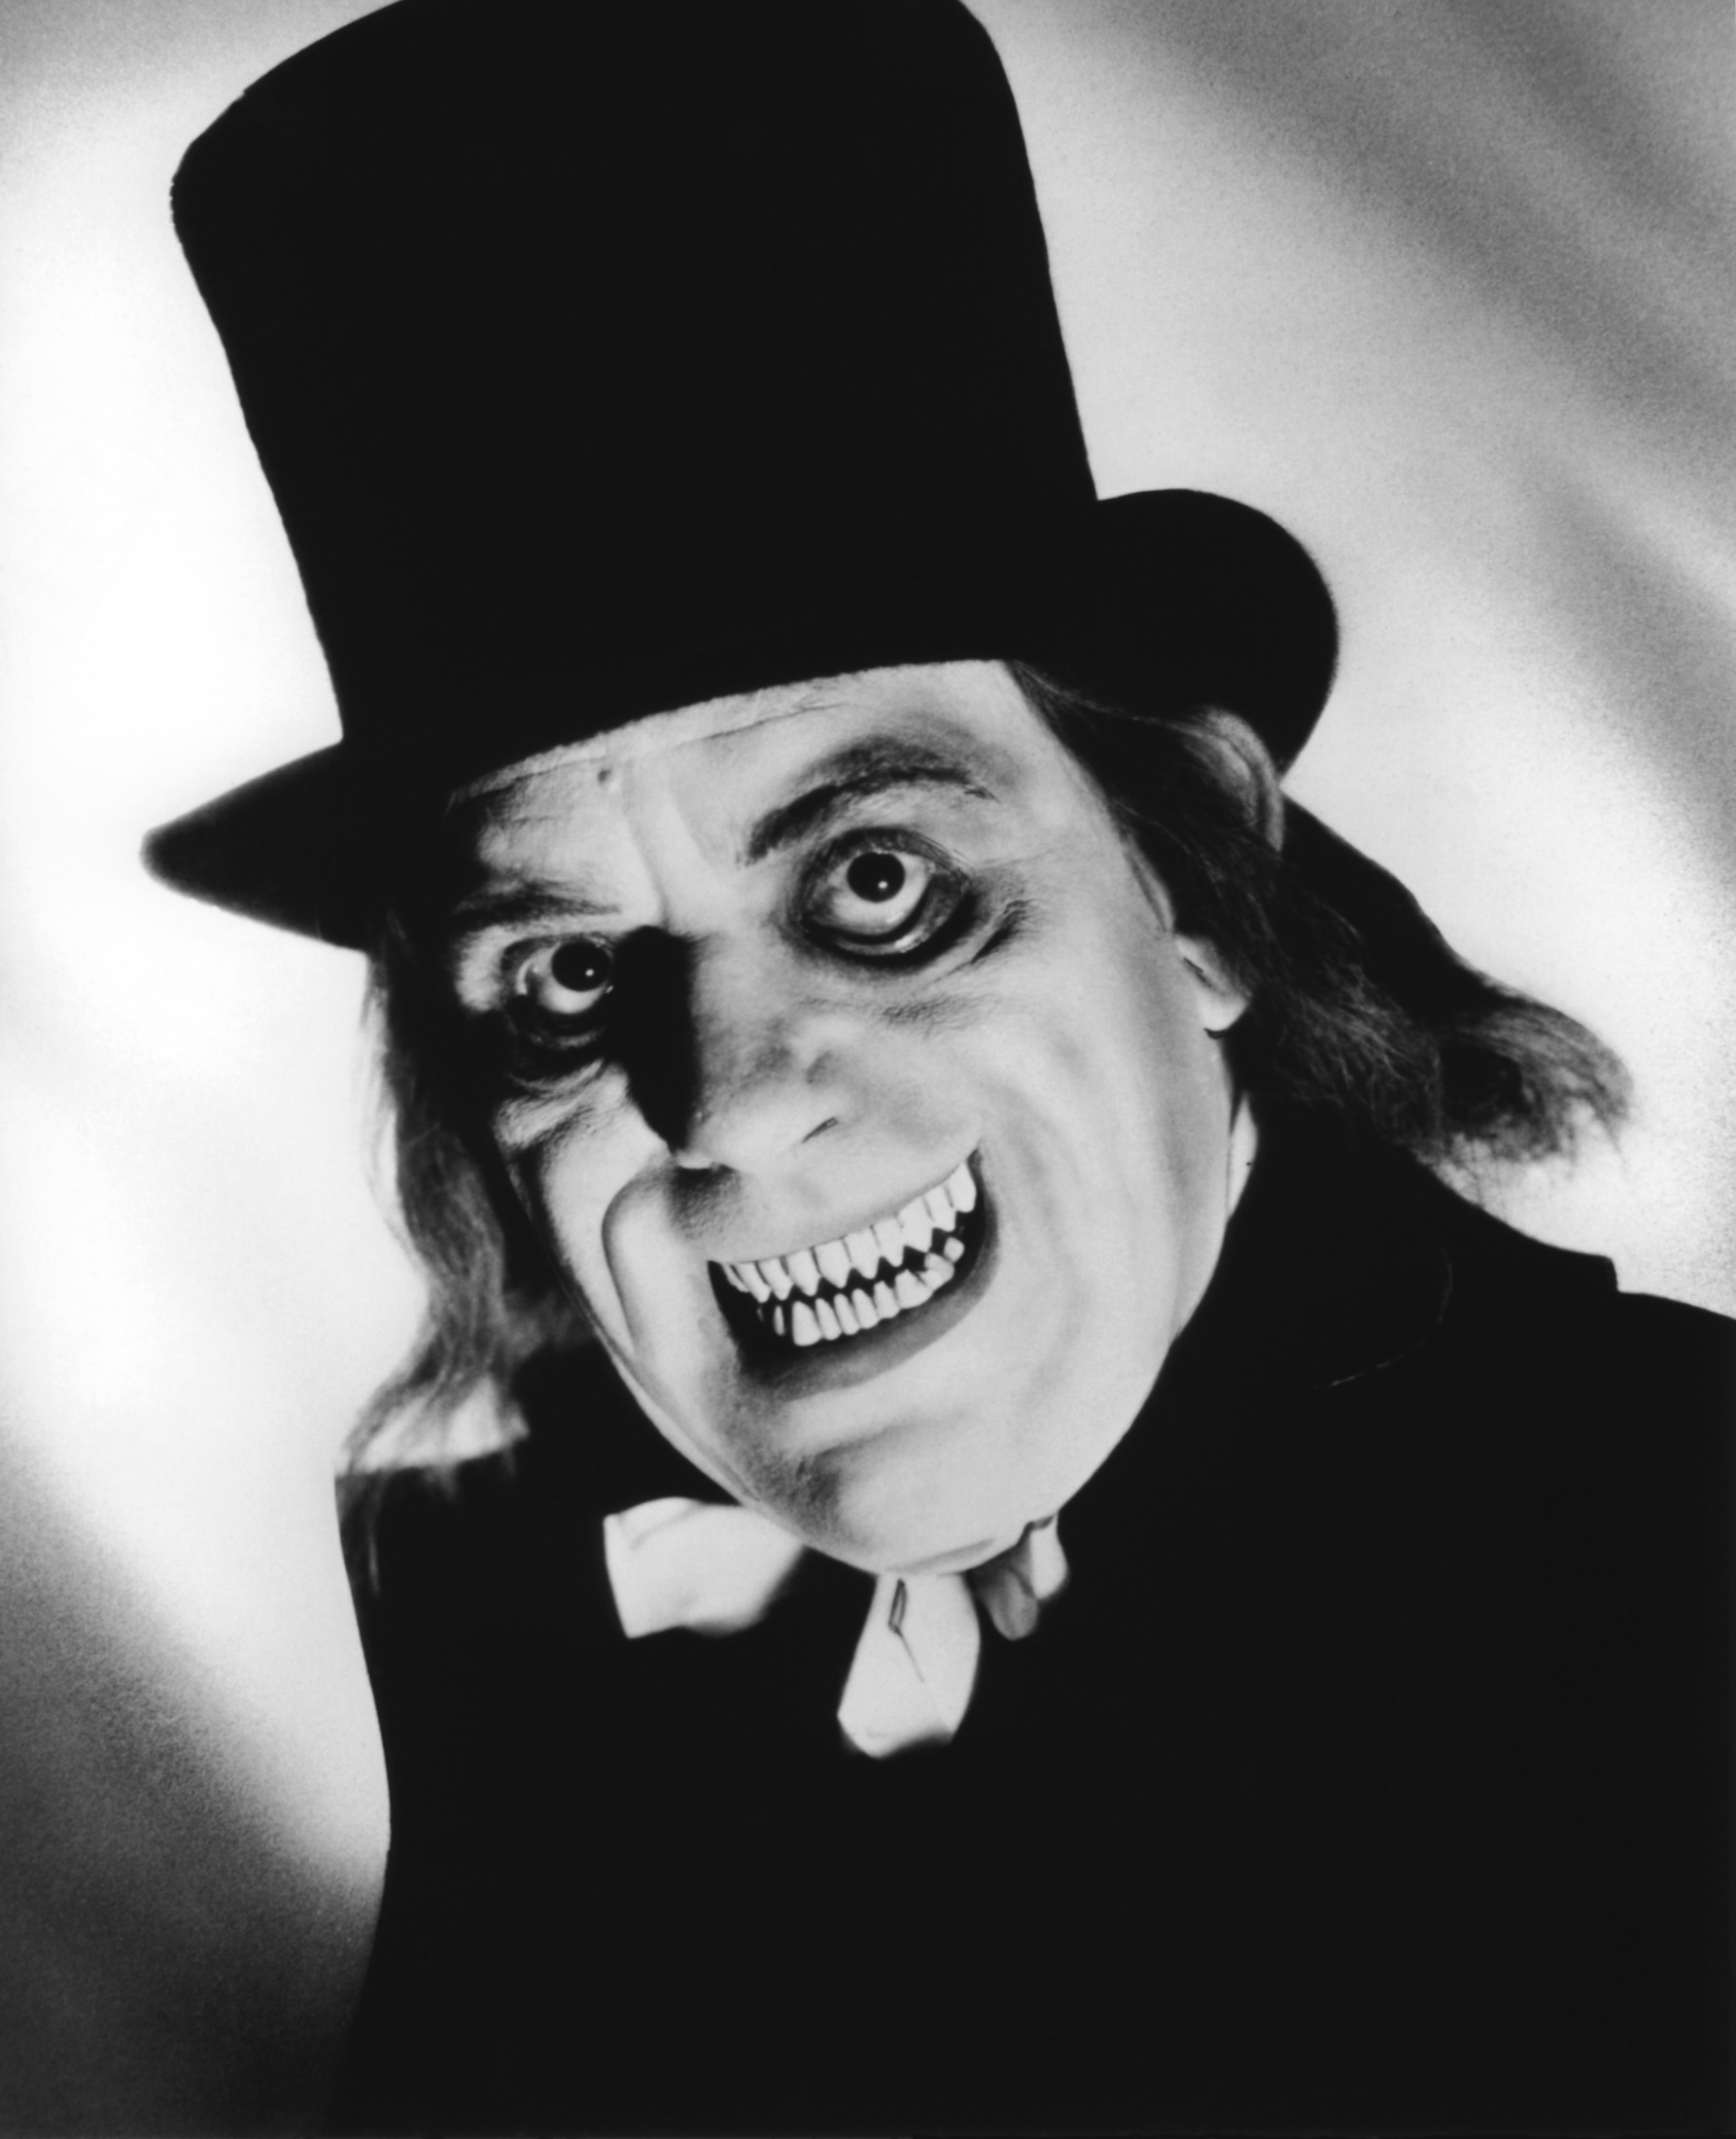 london after midnight - UPDATE: London After Midnight Finally Found?